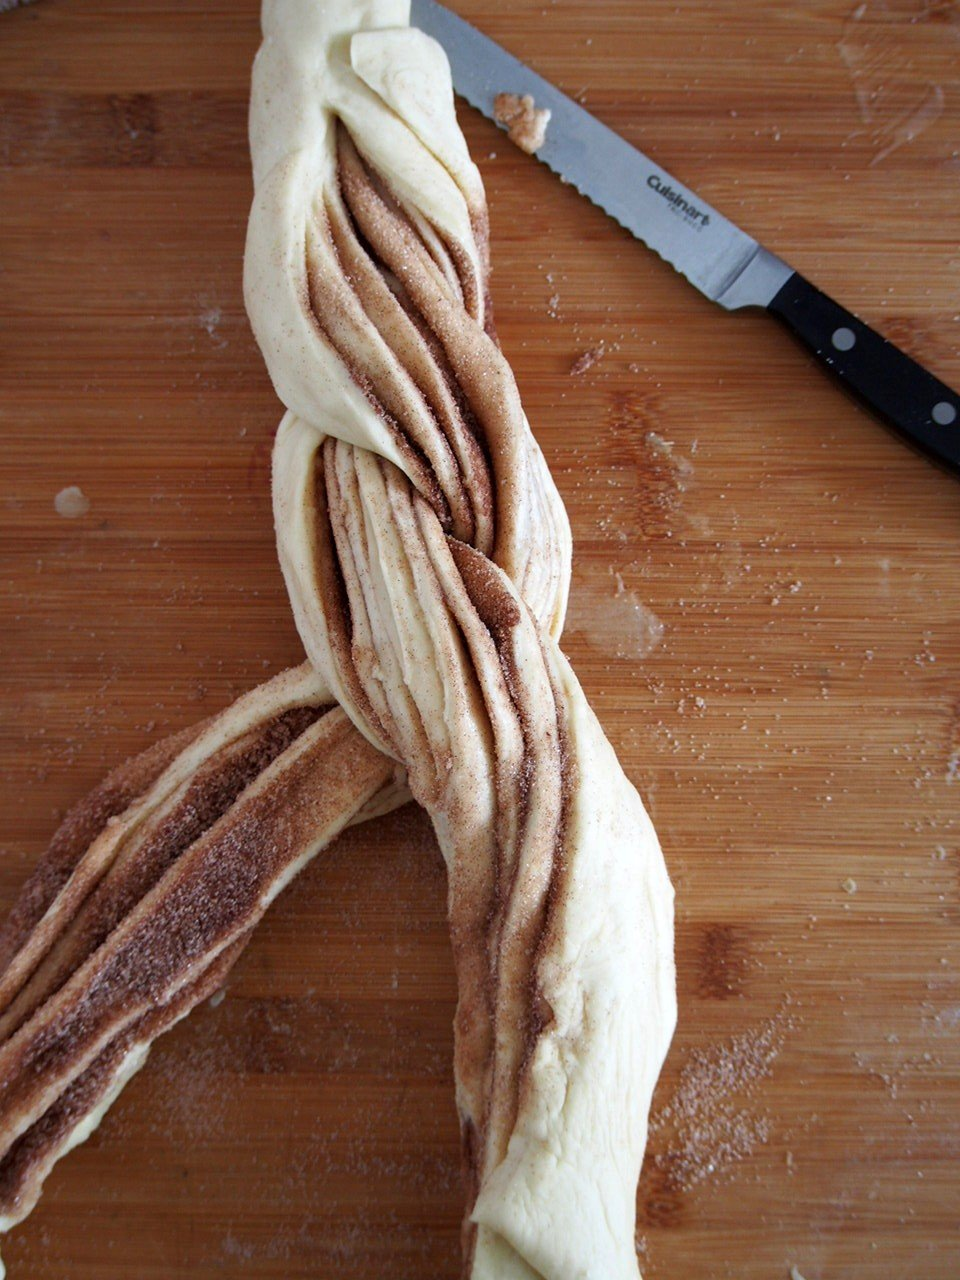 Braiding the cinnamon bread dough.